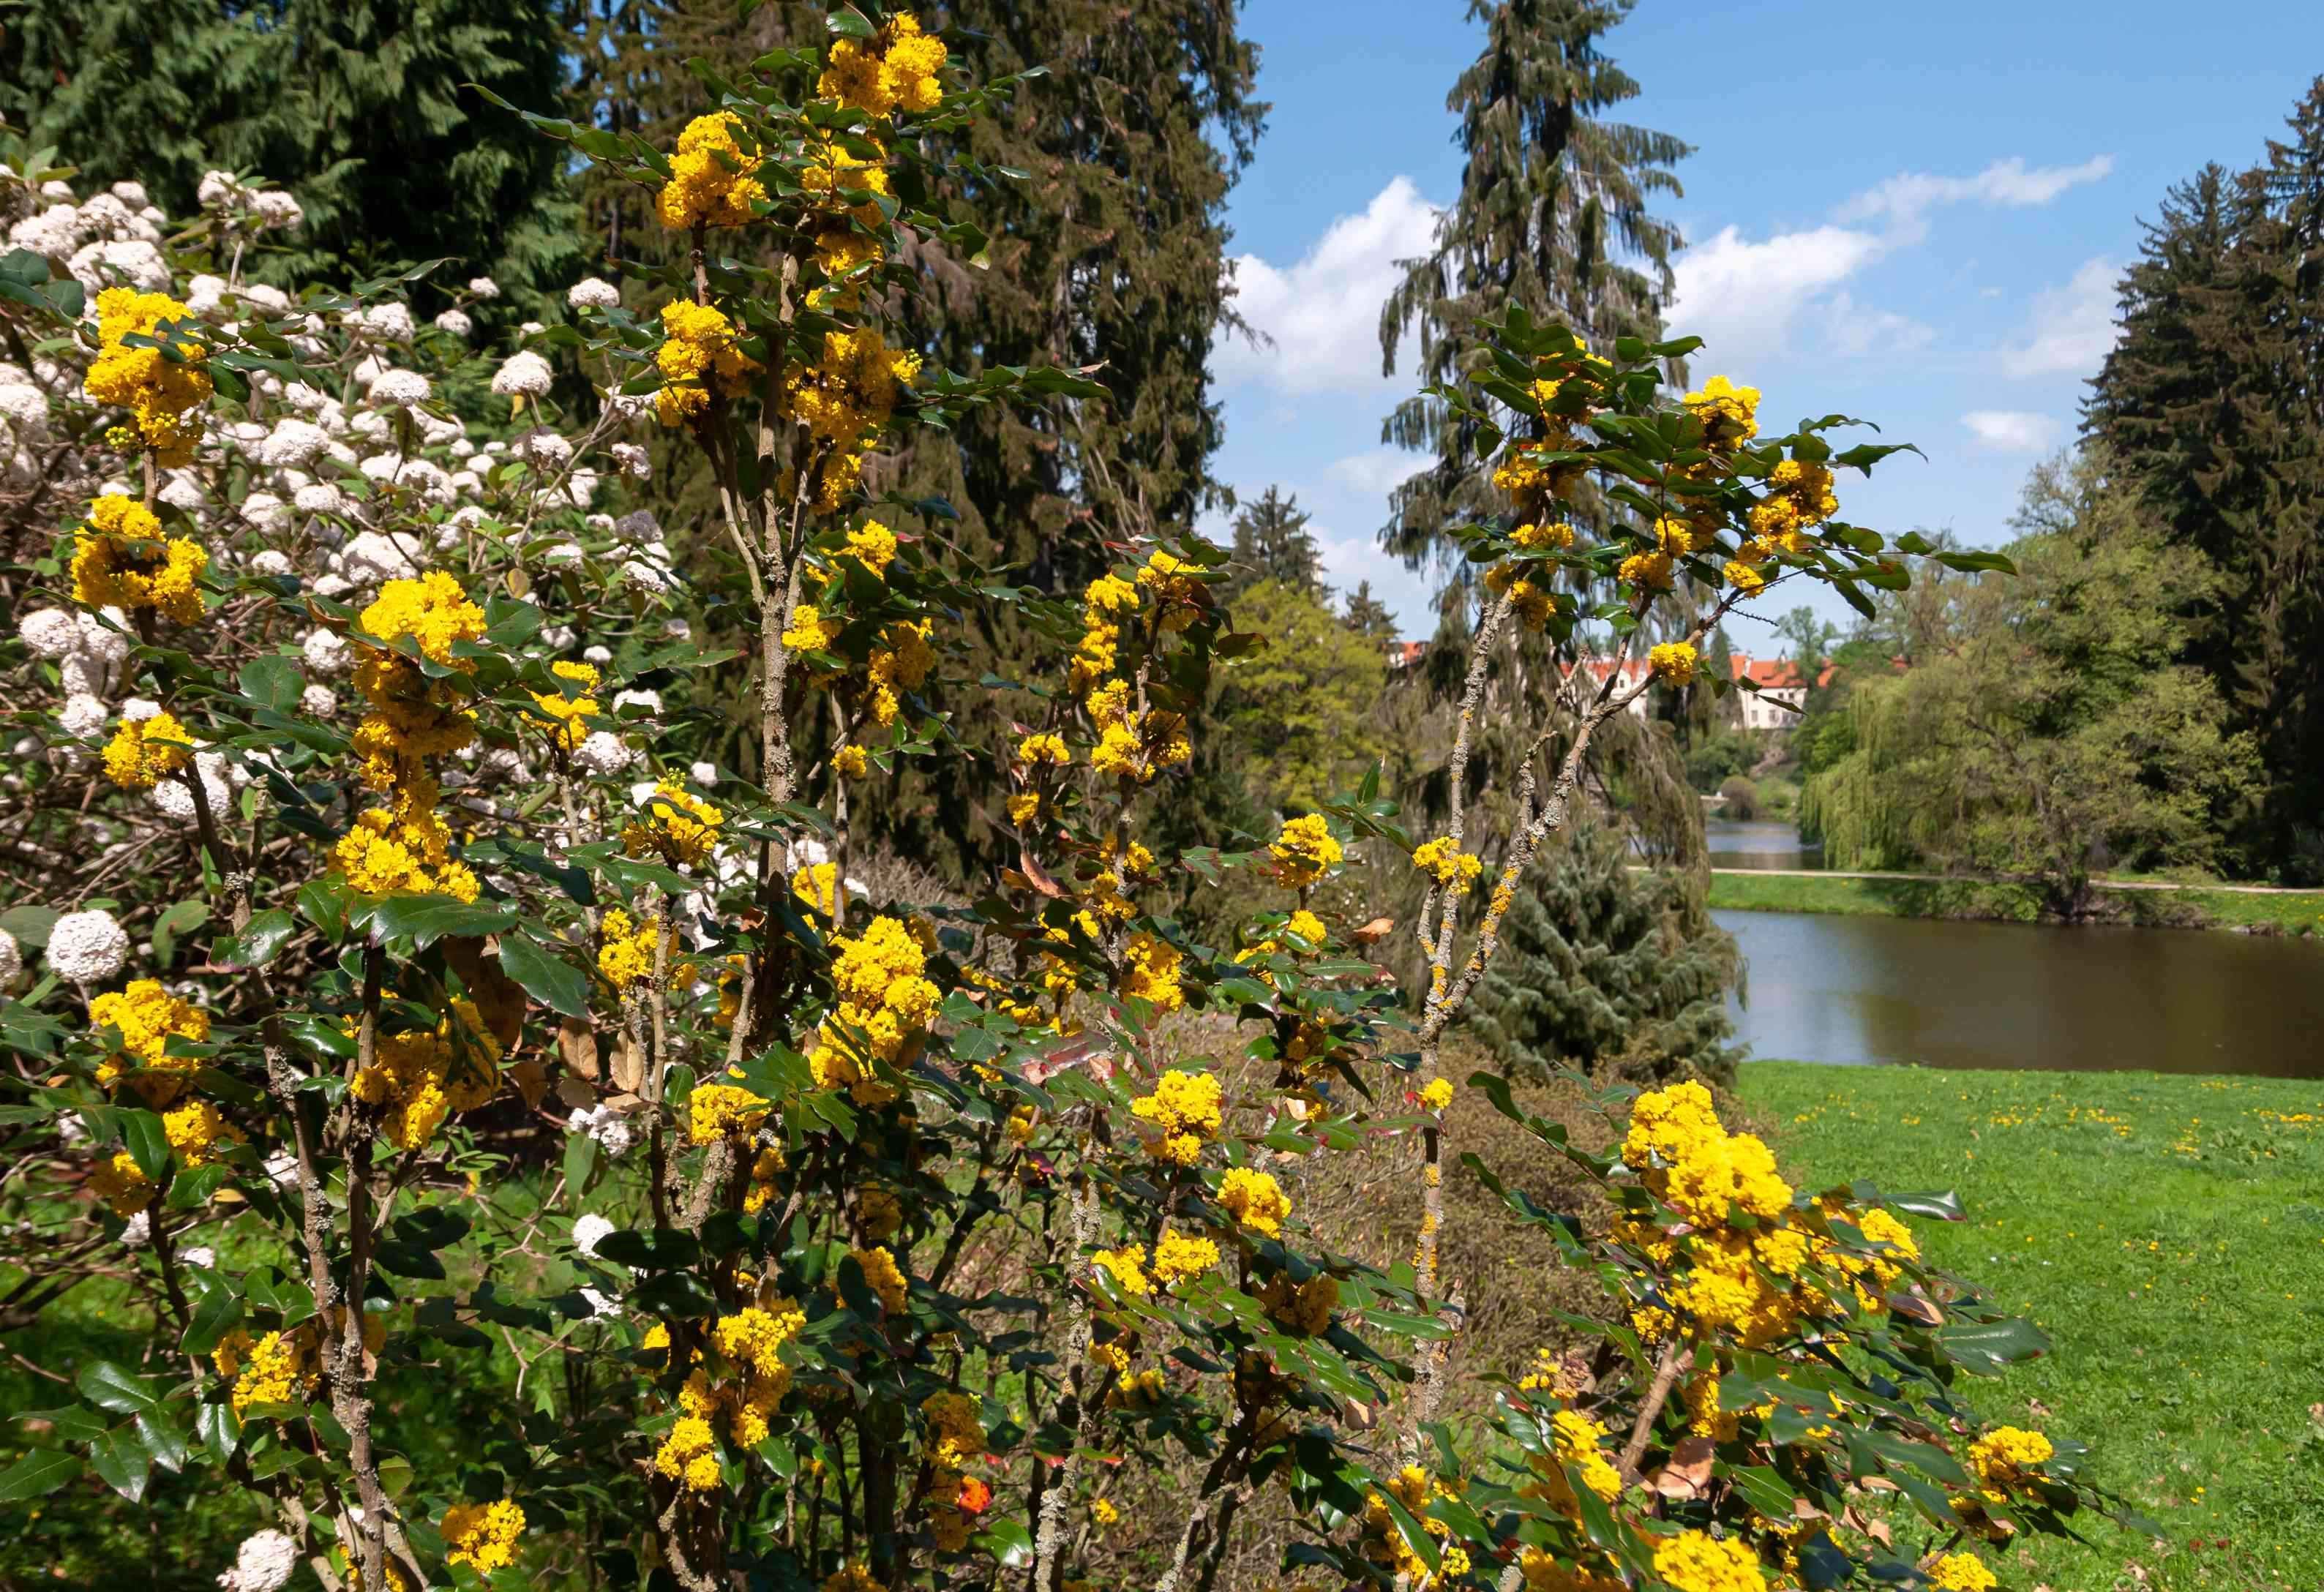 Oregon grape shrub with tall branches and yellow flowers